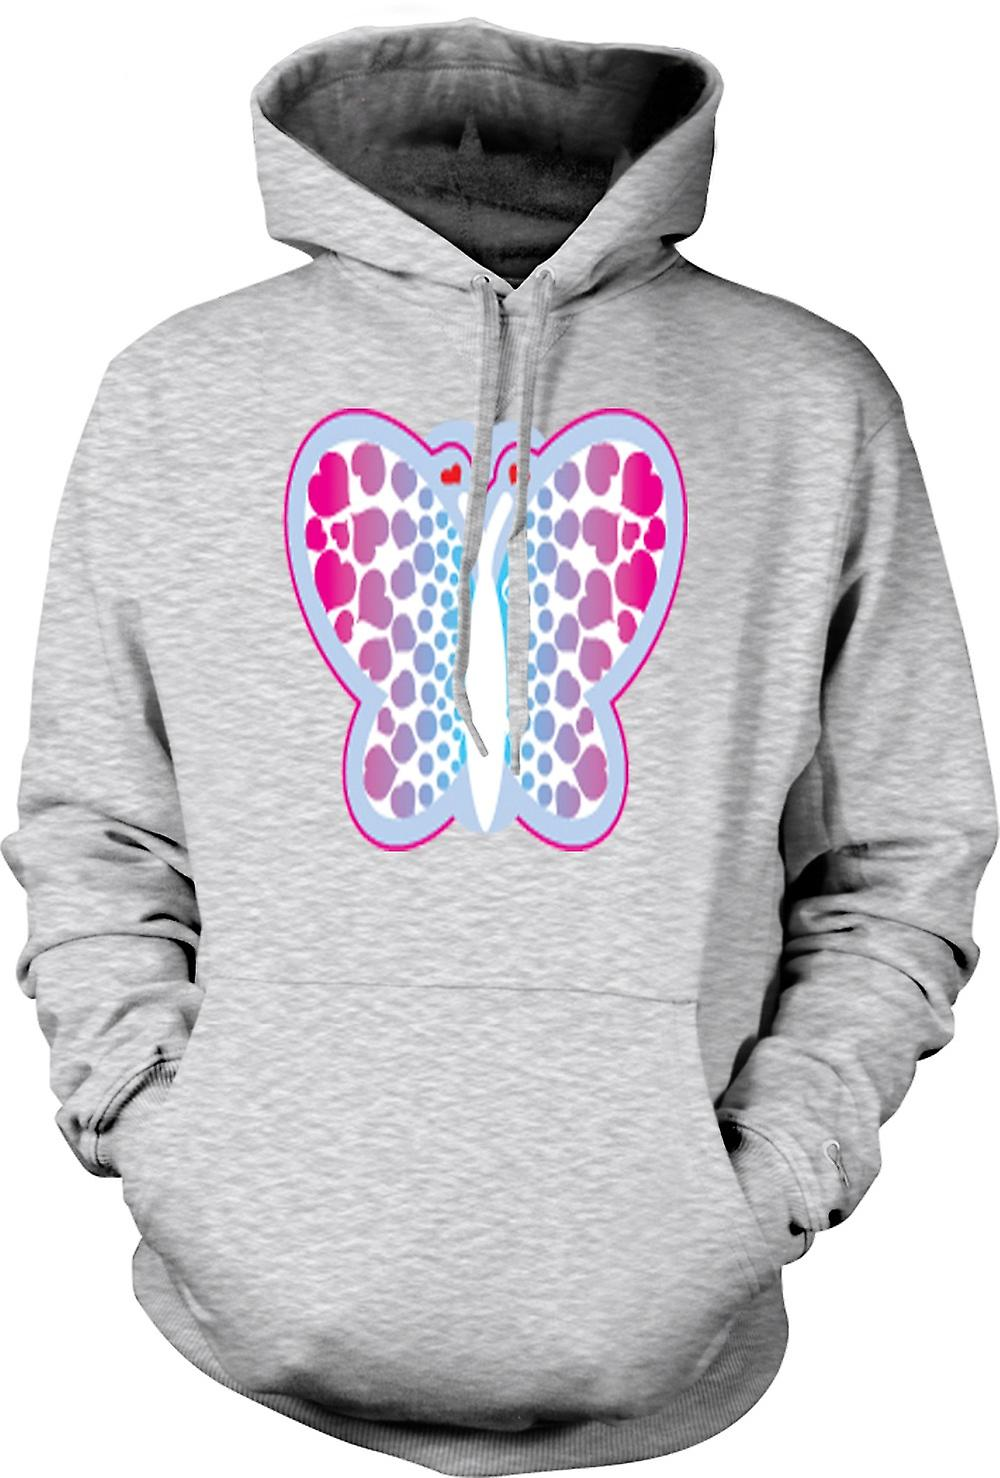 Mens Hoodie - Butterfly with Hearts